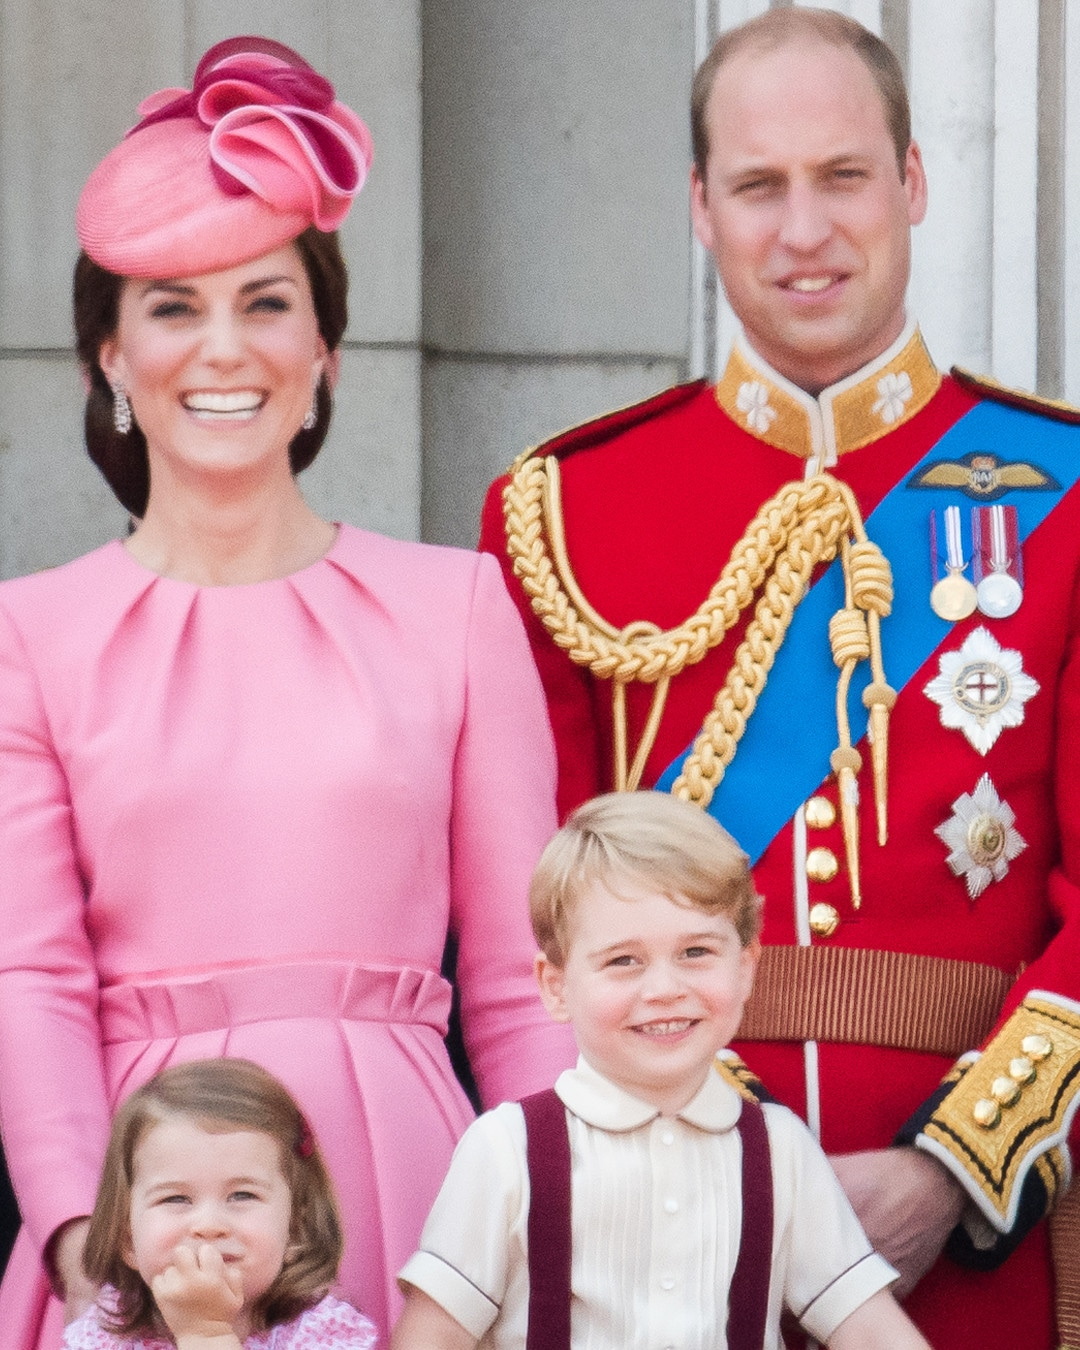 ESC: Do's and Dont's, Kate Middleton, Top Photo/Thumb